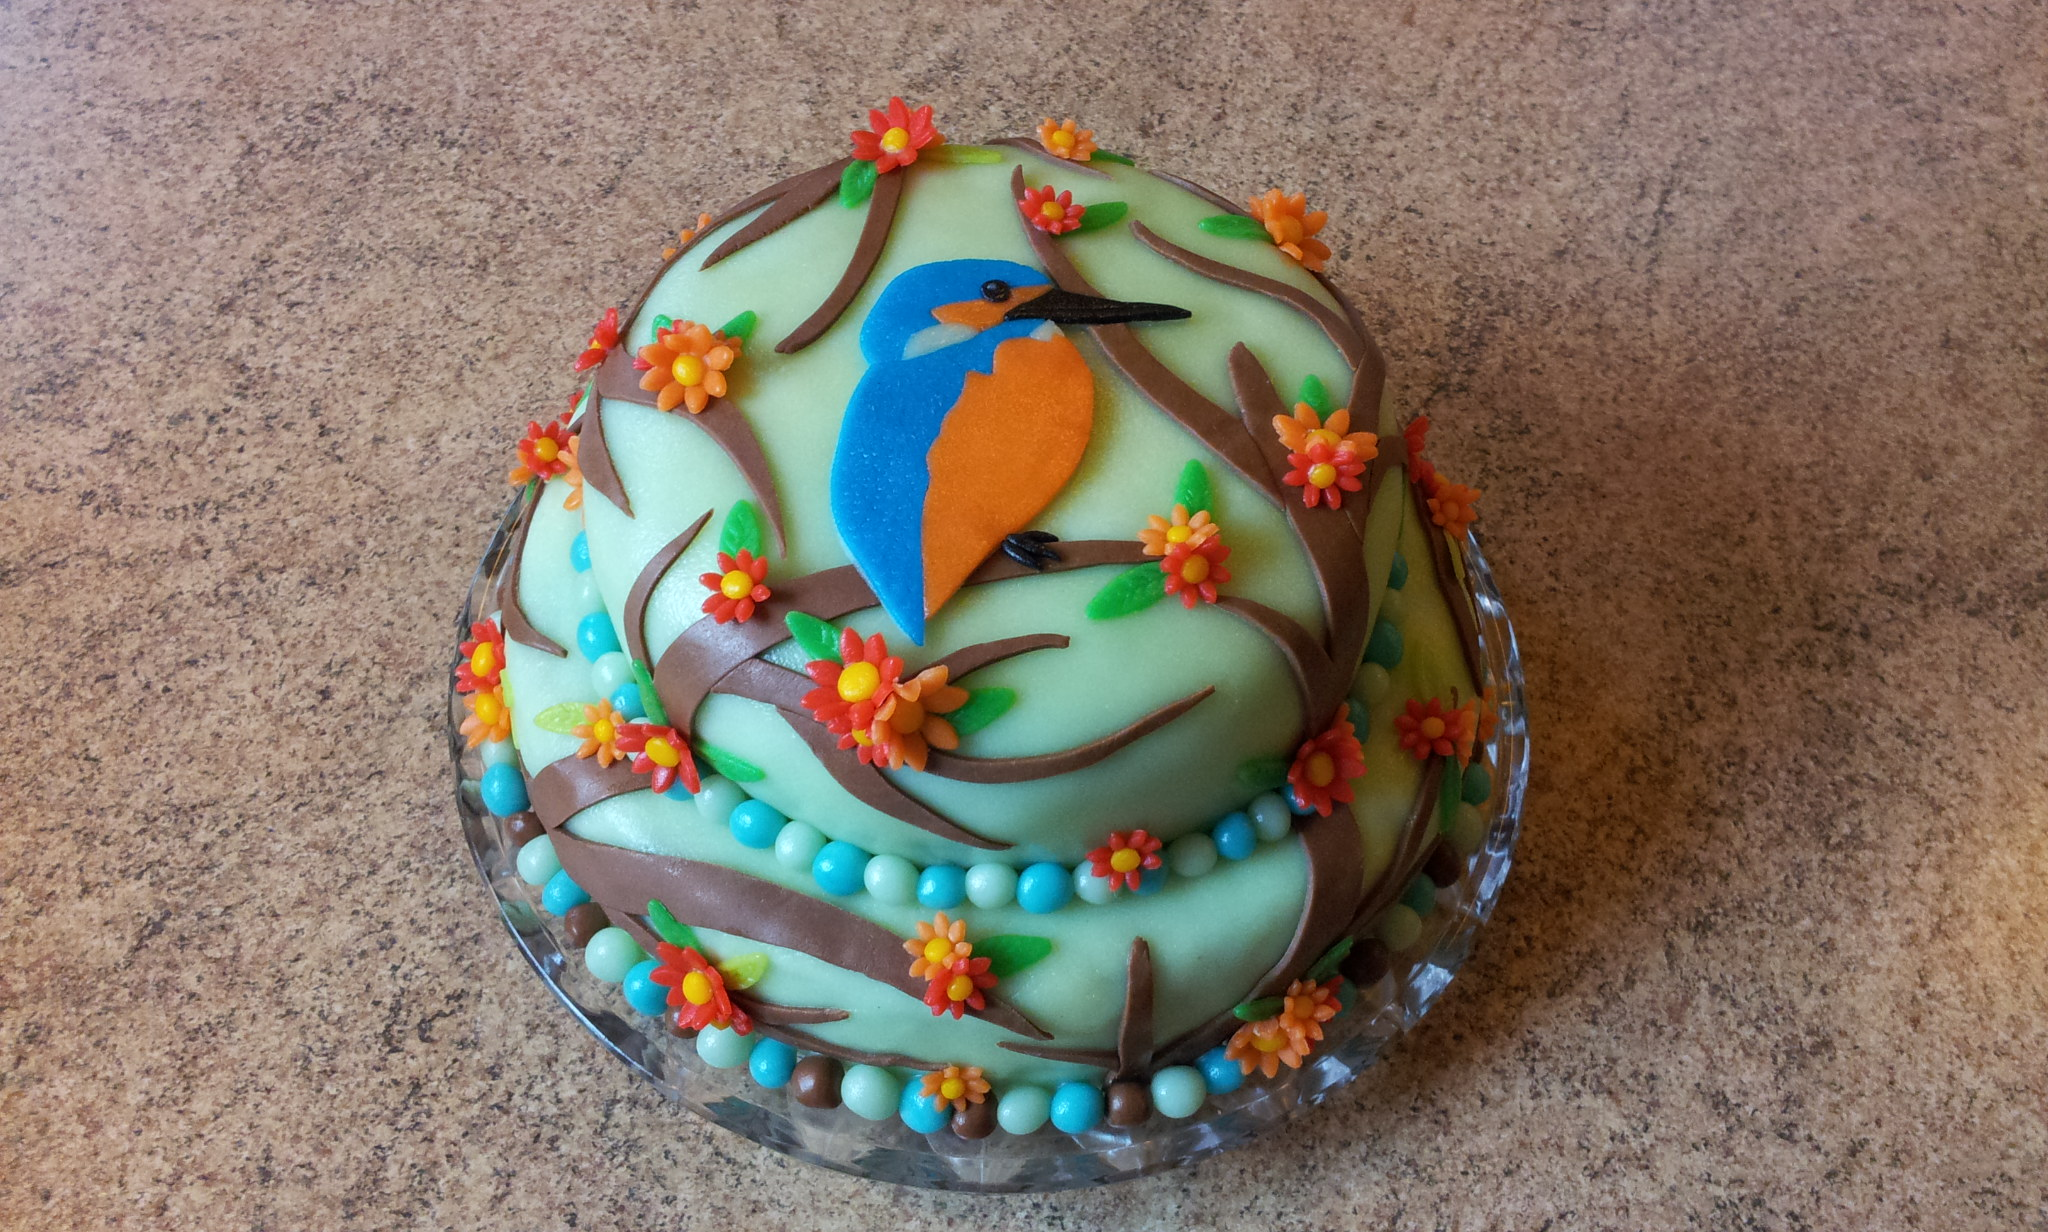 Kingfisher Birthday Cake by LauraBakery on deviantART